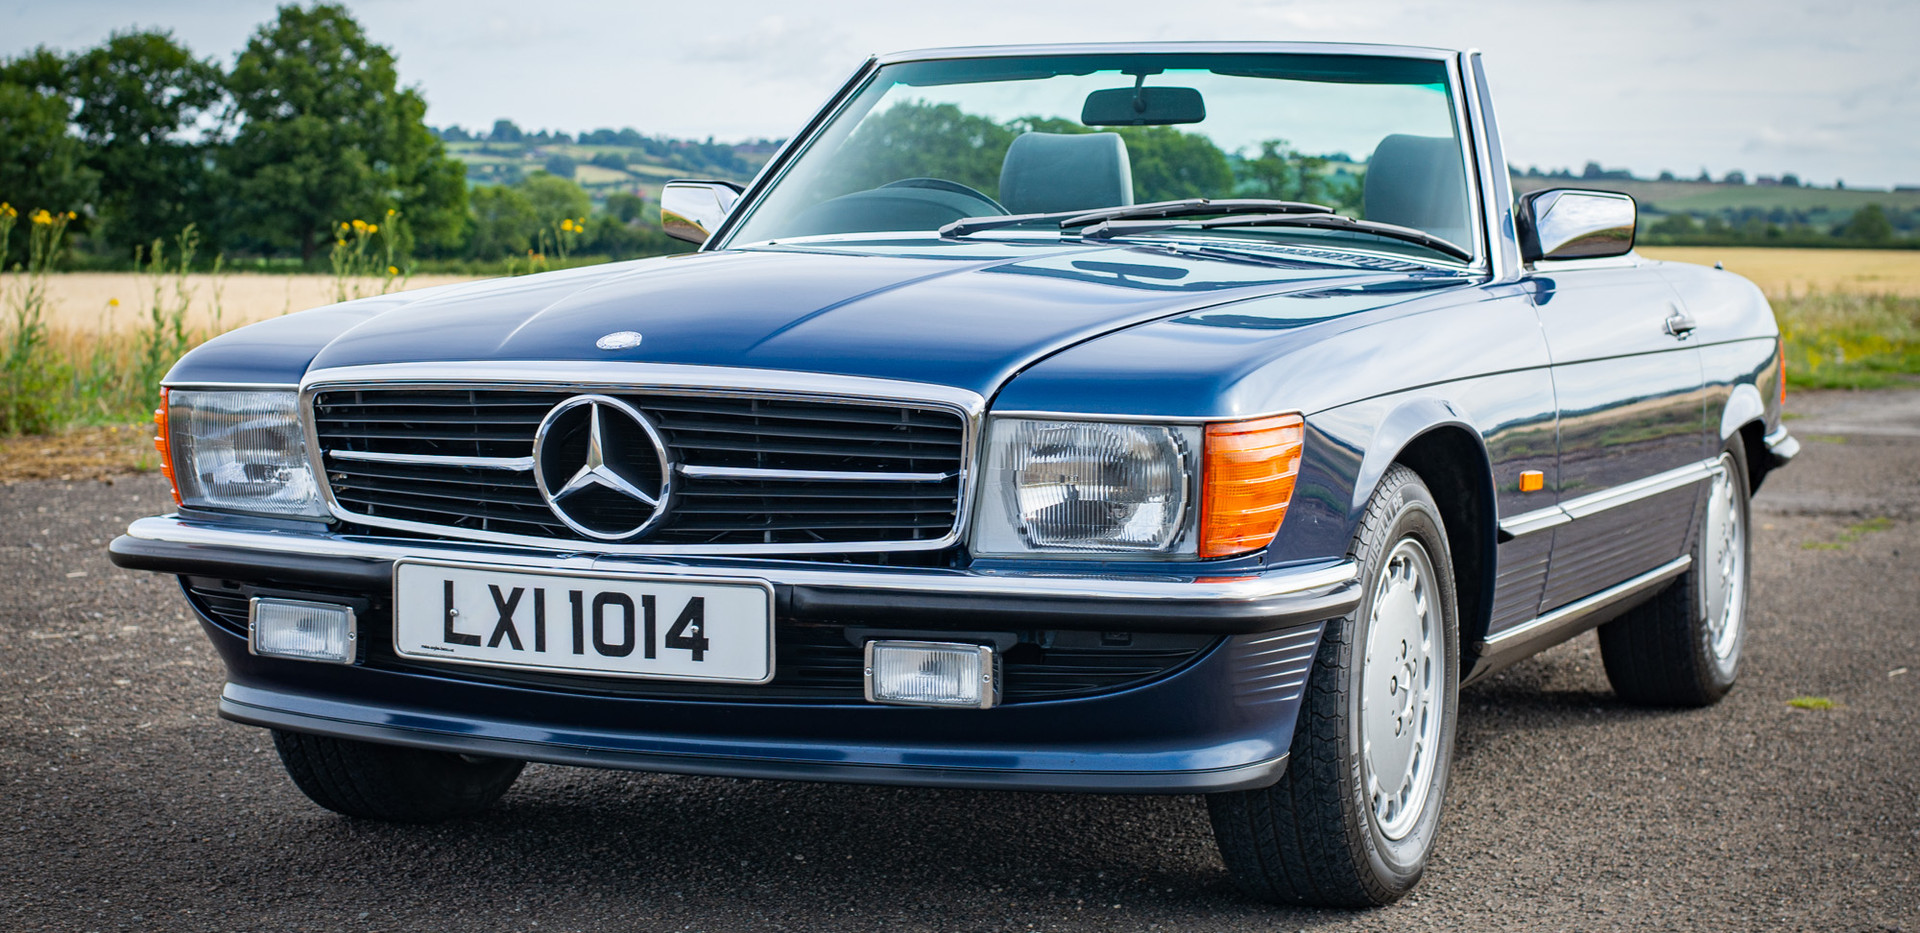 300SL 107 Blue for sale Uk london-6.jpg